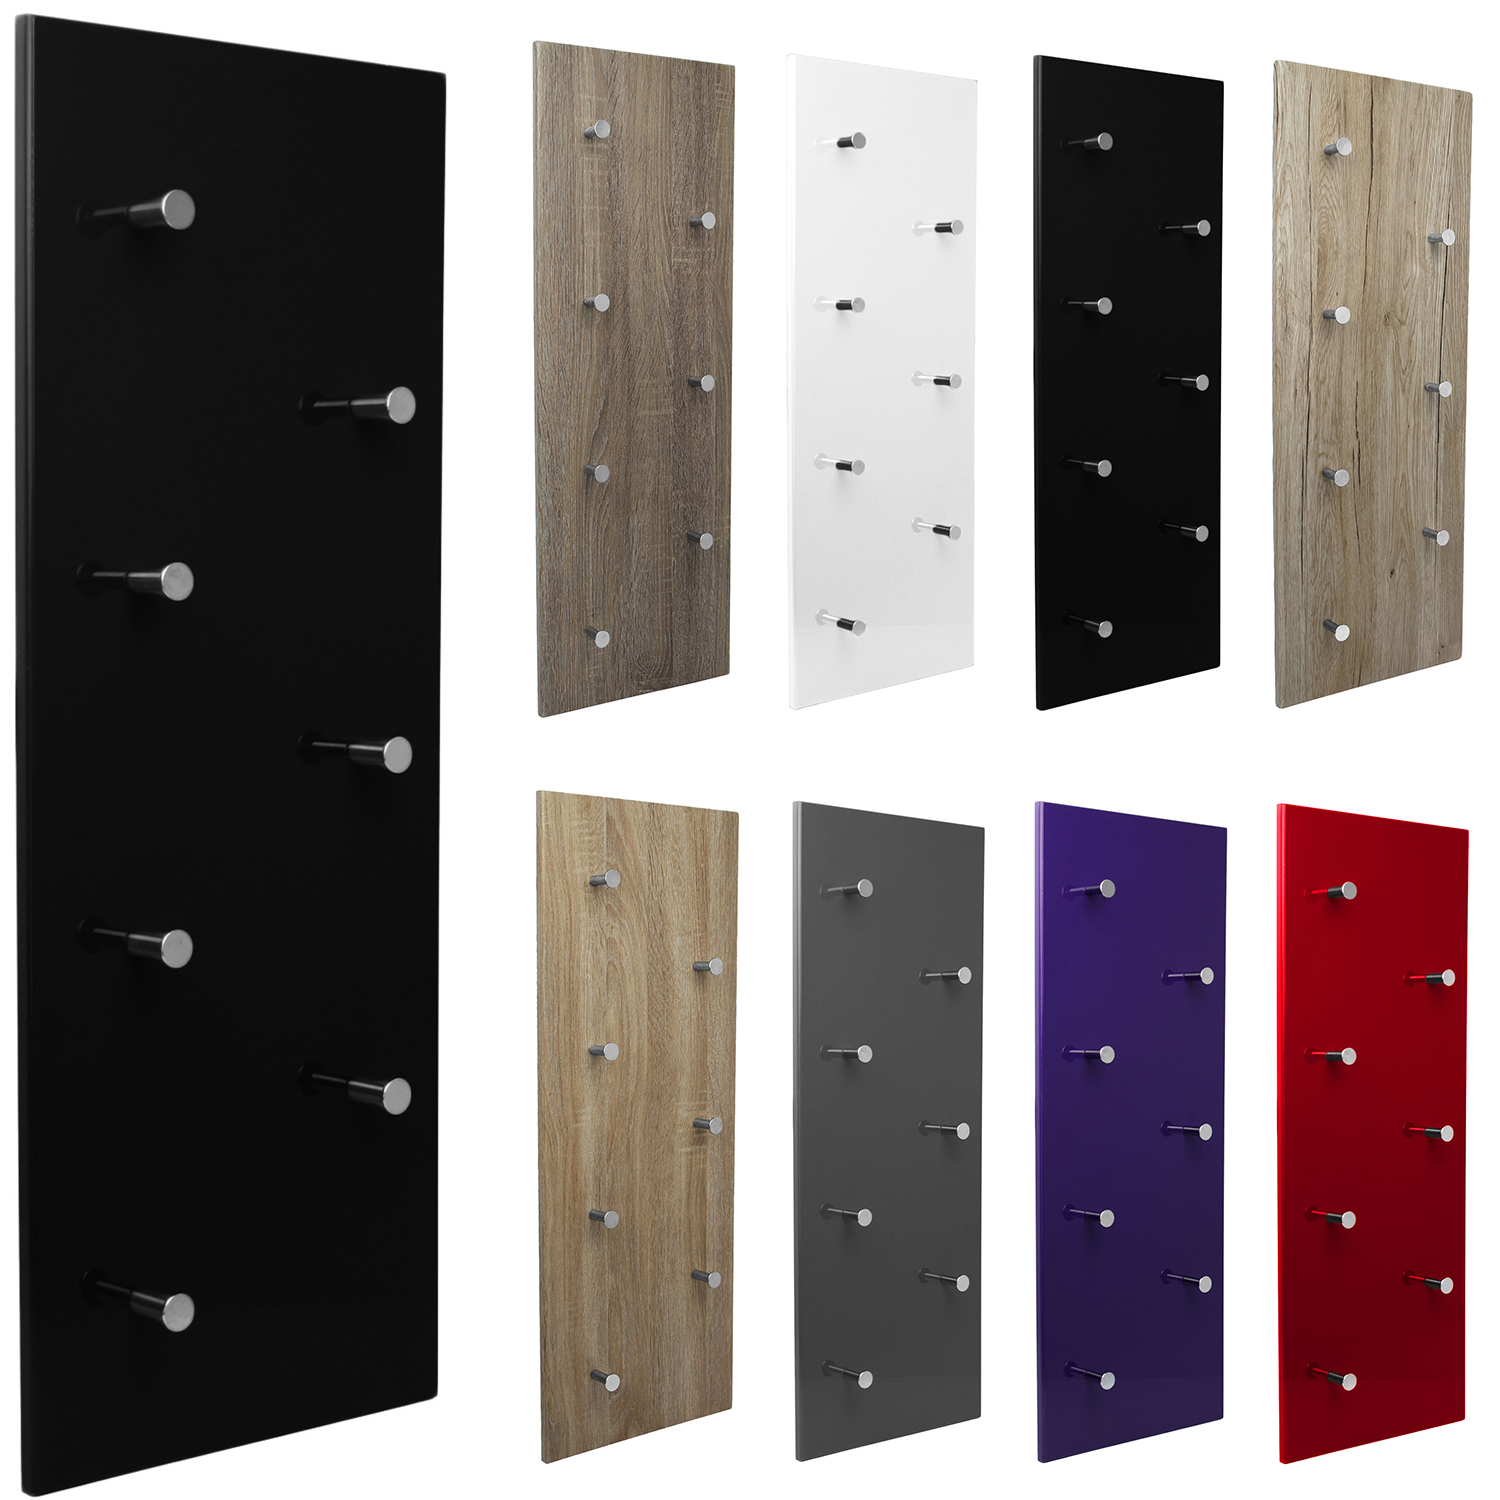 garderobe wandgarderobe wandpaneel flurgarderobe flur garderobenleiste 7 haken ebay. Black Bedroom Furniture Sets. Home Design Ideas